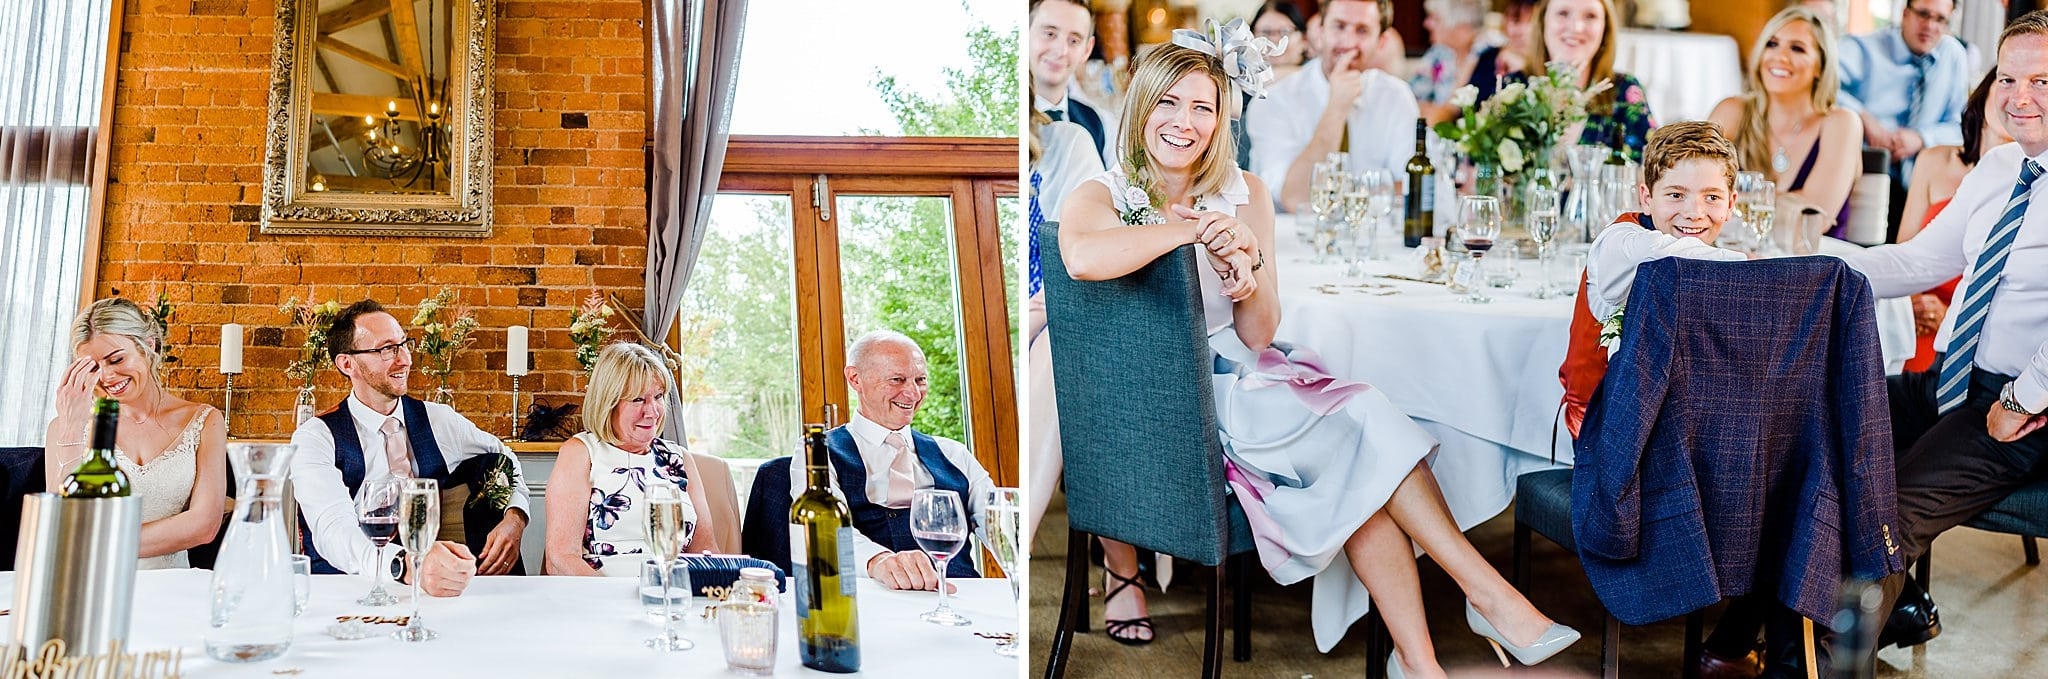 Wedding guests react to best man speech at Carriage Hall